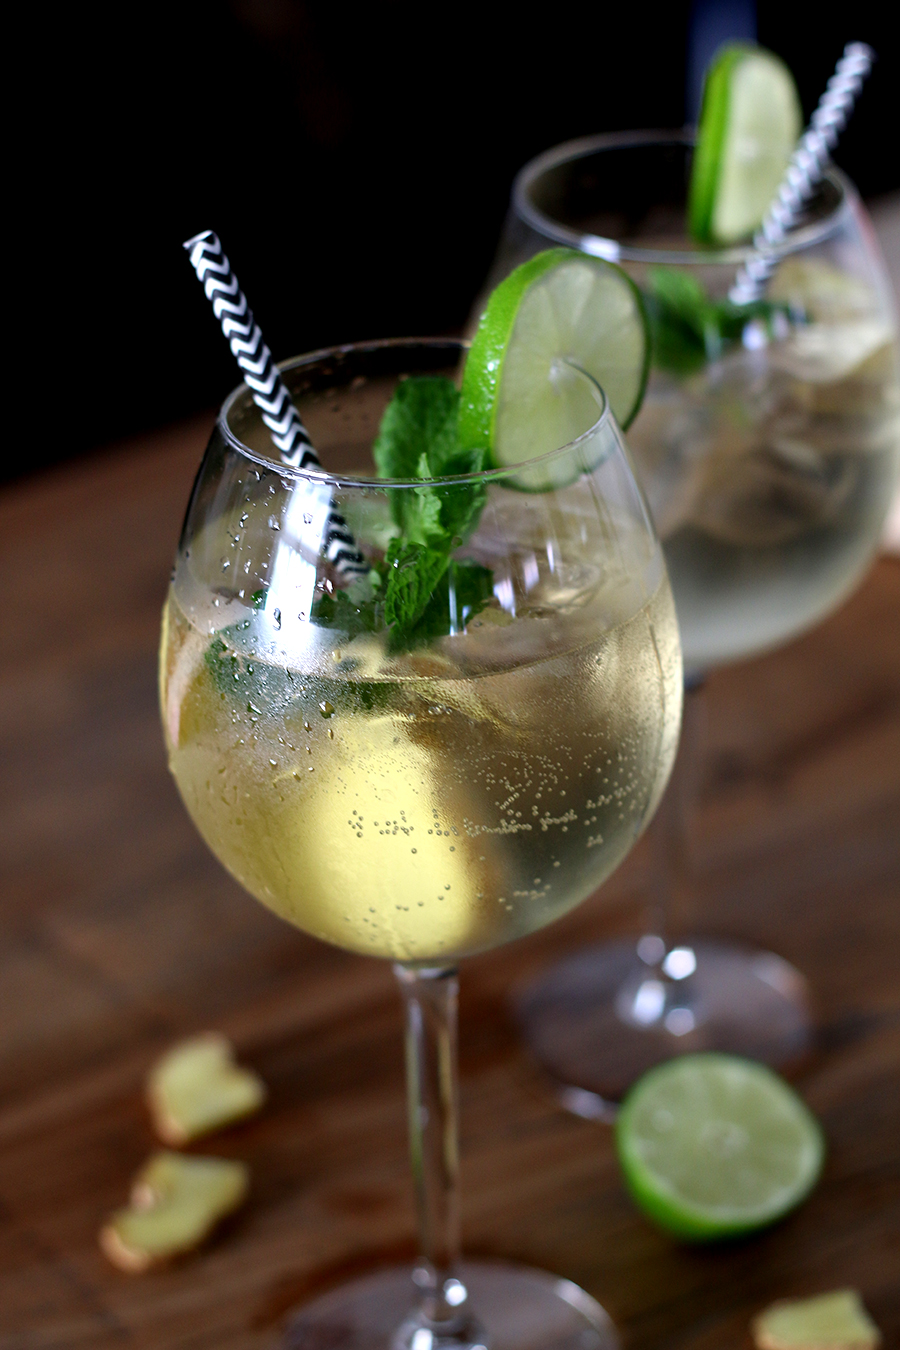 Verkoelend zomerdrankje: Gin met Elderflower of Ginger ale